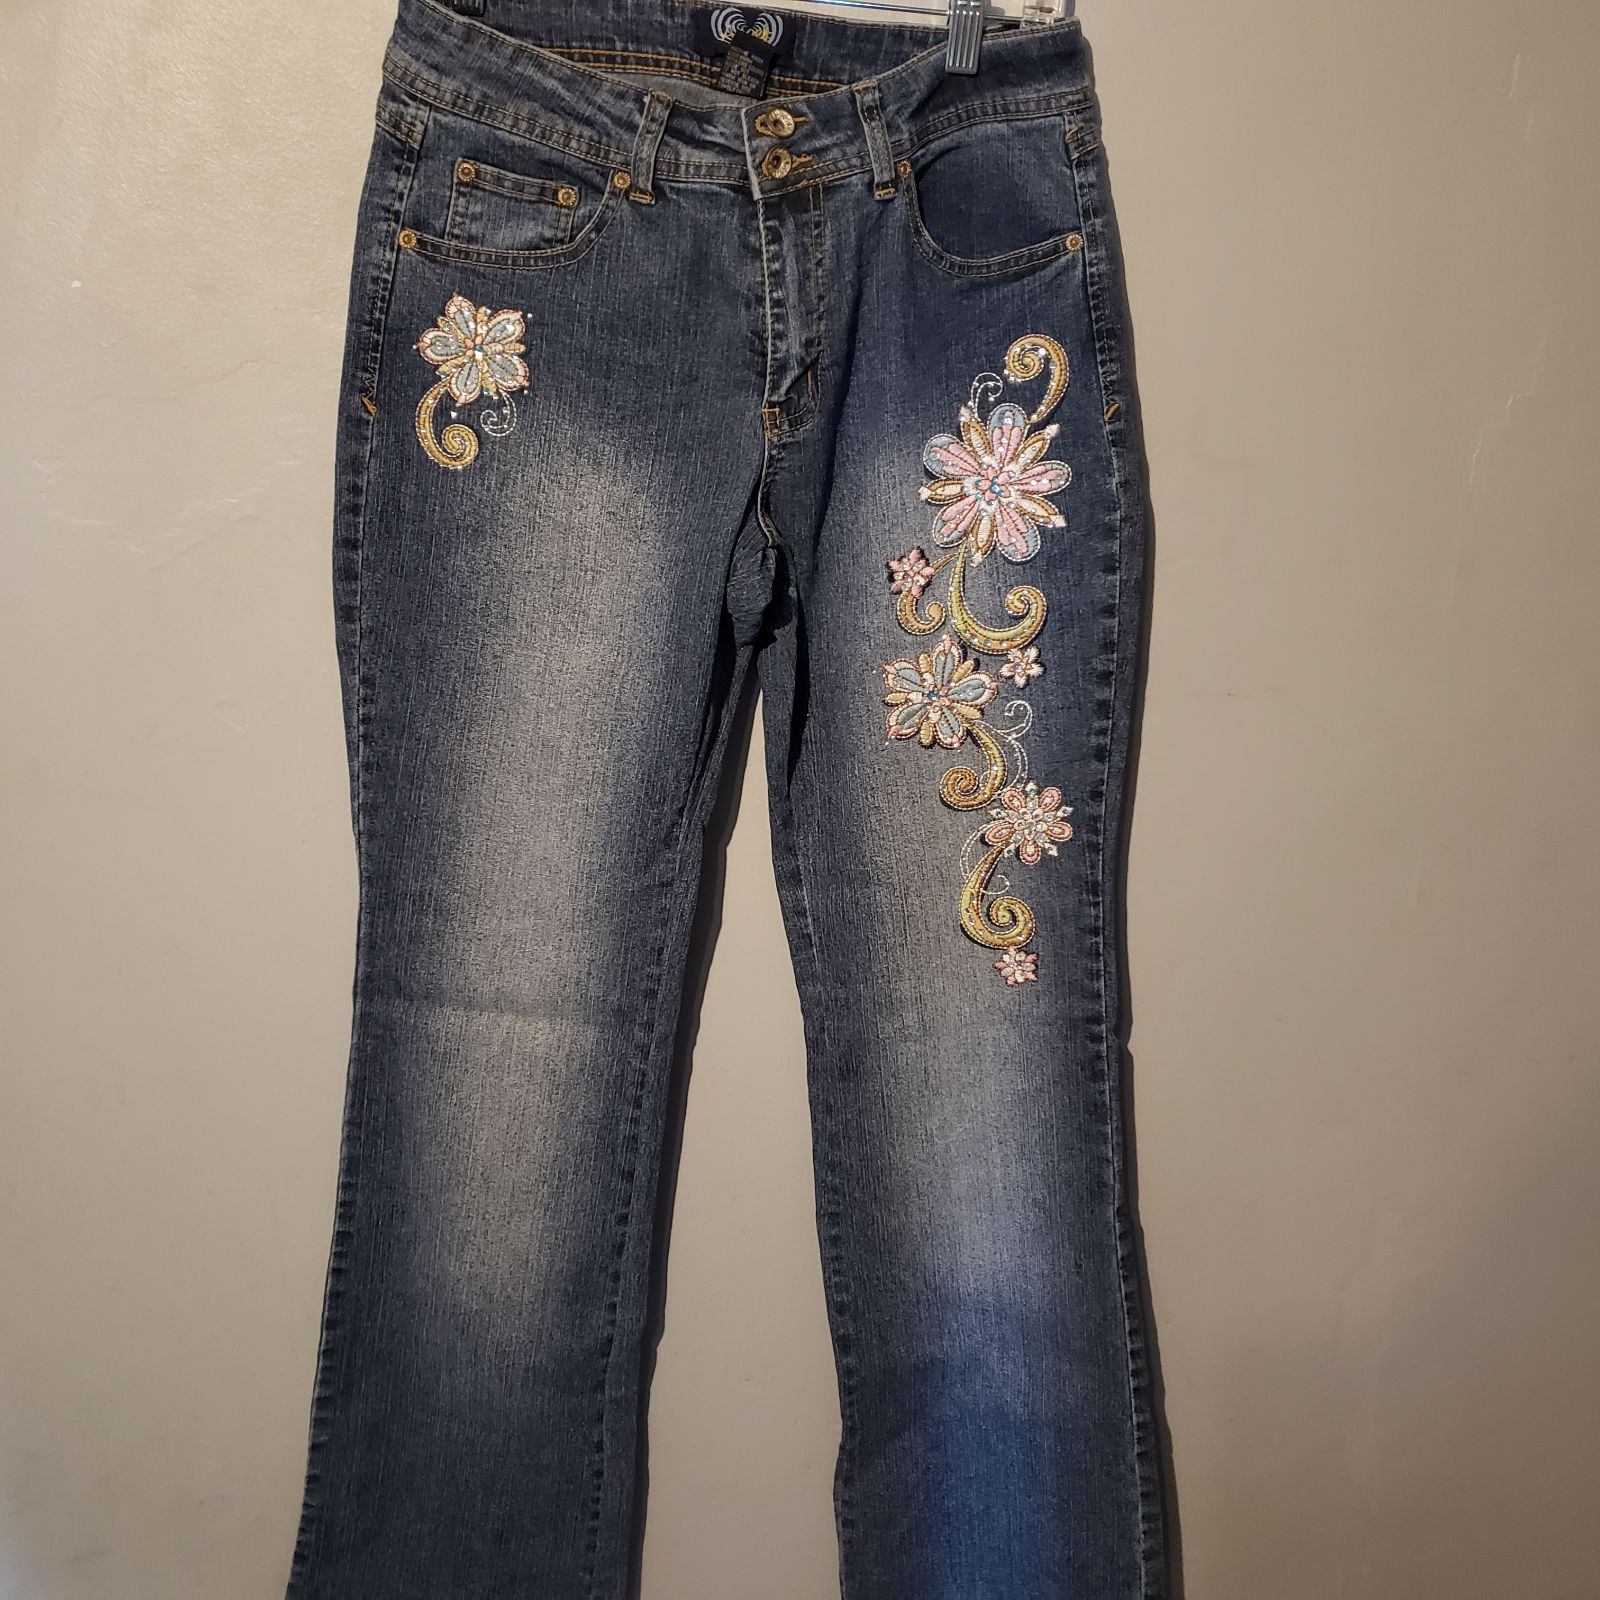 Angel's embroidered jeans size 8 flare